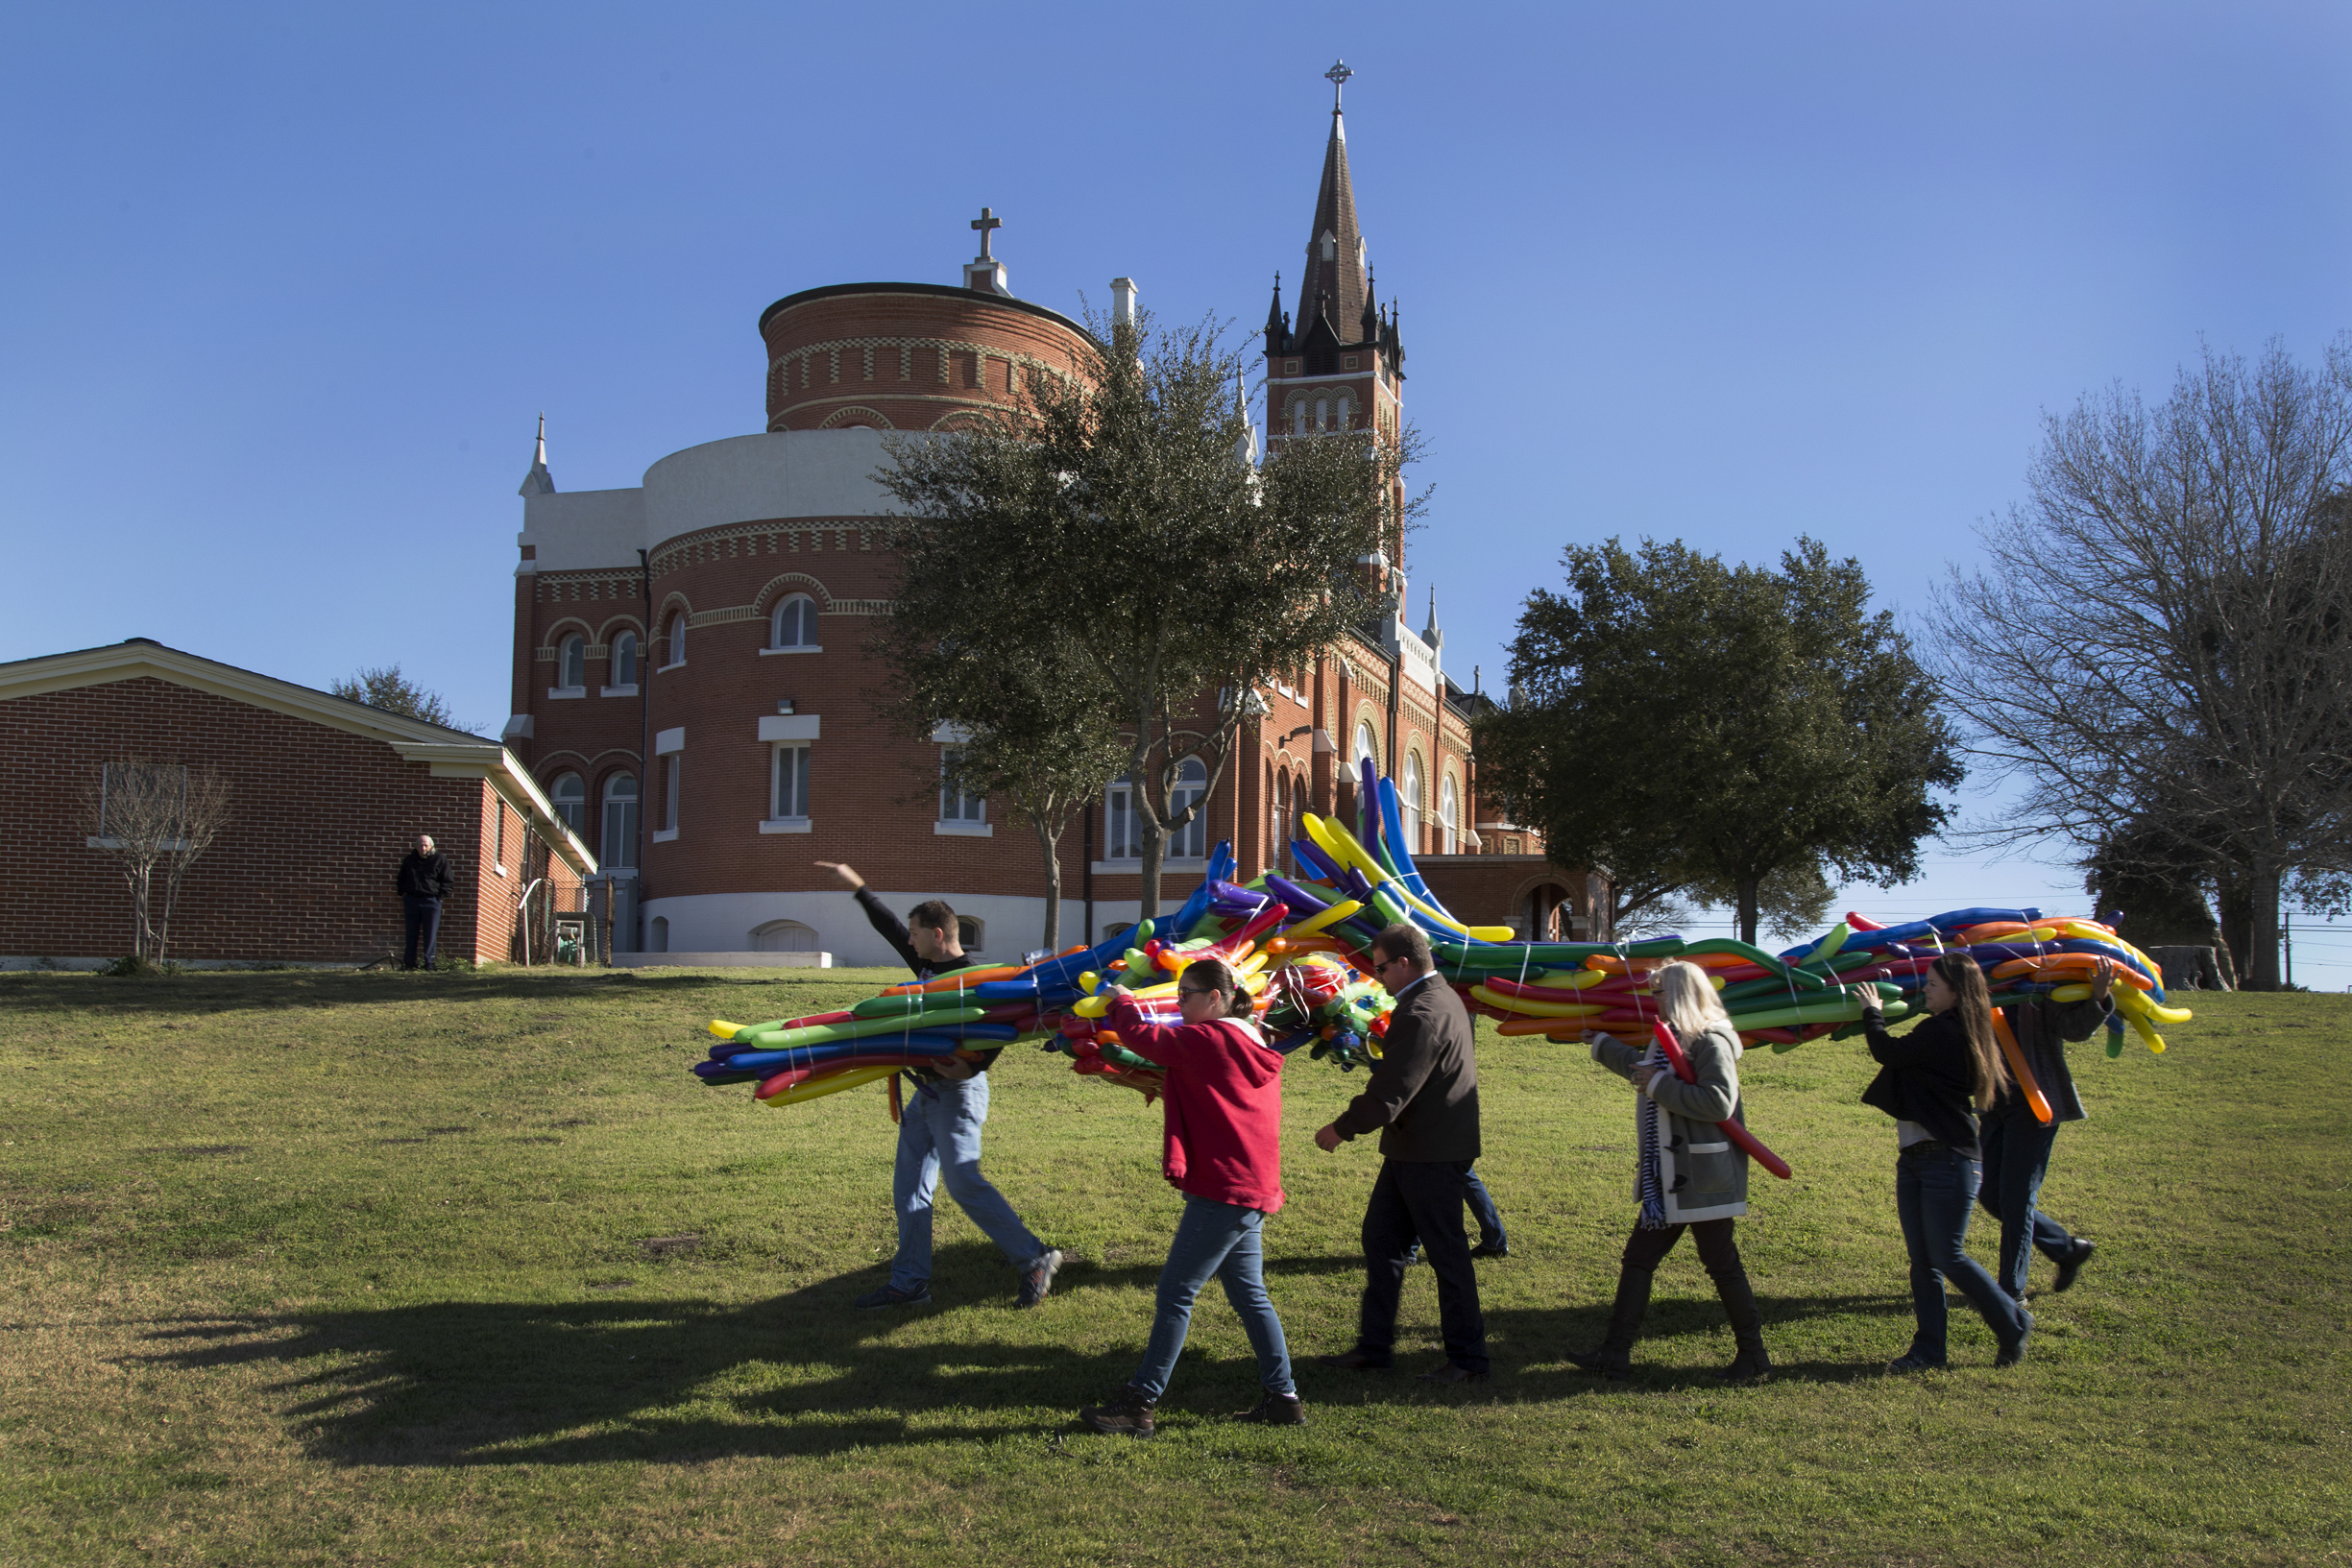 A cross made up of long, thin balloons is carried past the church to be released with hundreds of smaller ones. Larger ballons filled with helium were tied to the cross before its release.